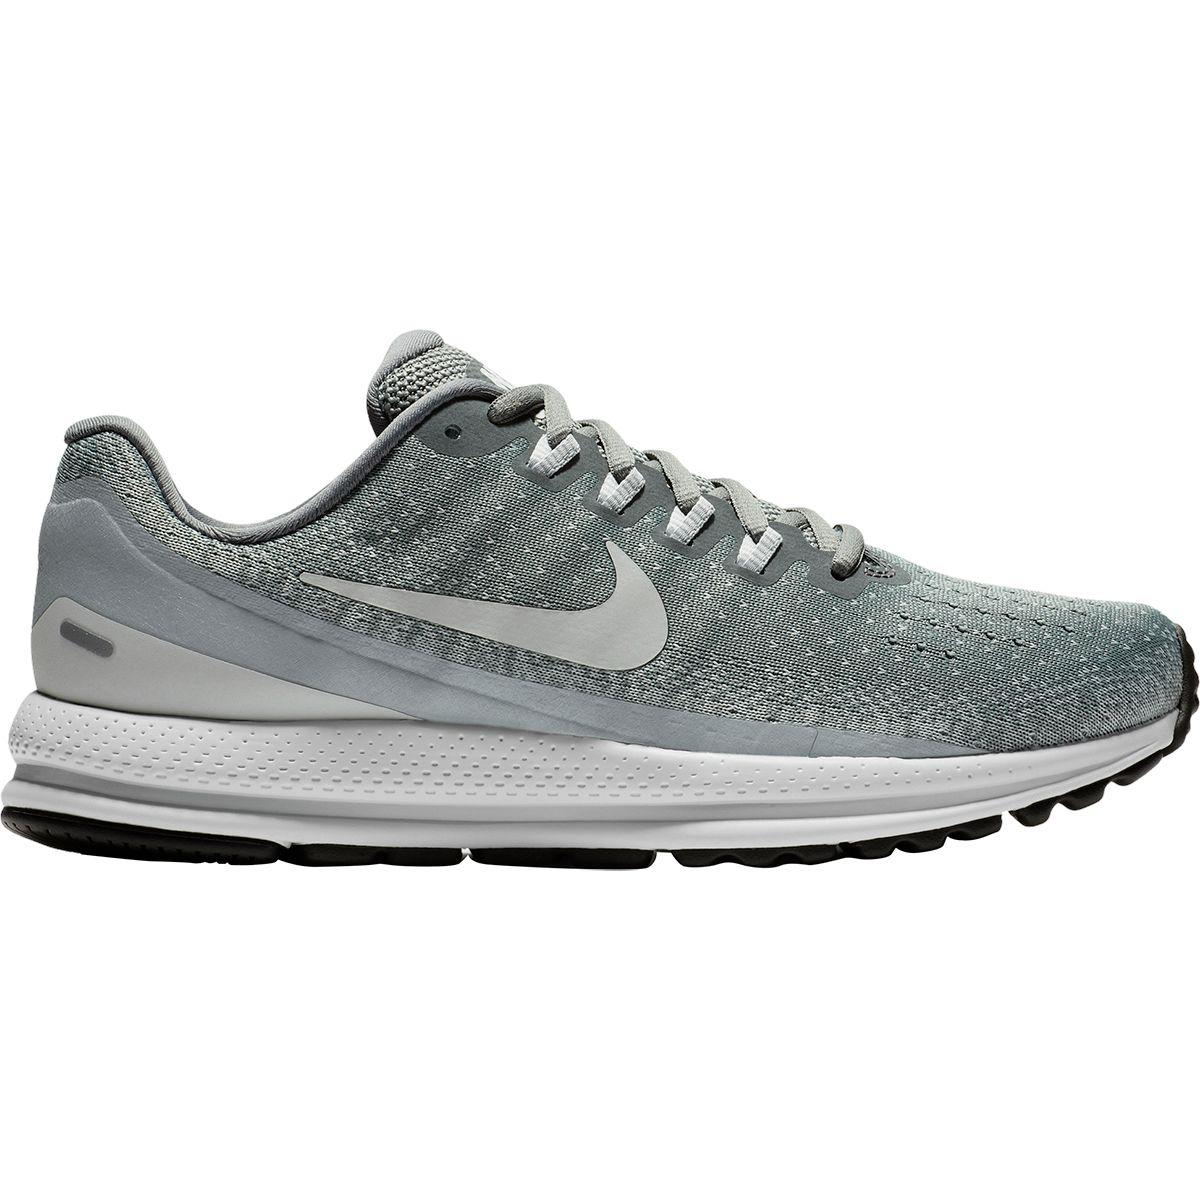 4a4d67ecea4b Lyst - Nike Air Zoom Vomero 13 Running Shoe in Gray - Save 29%